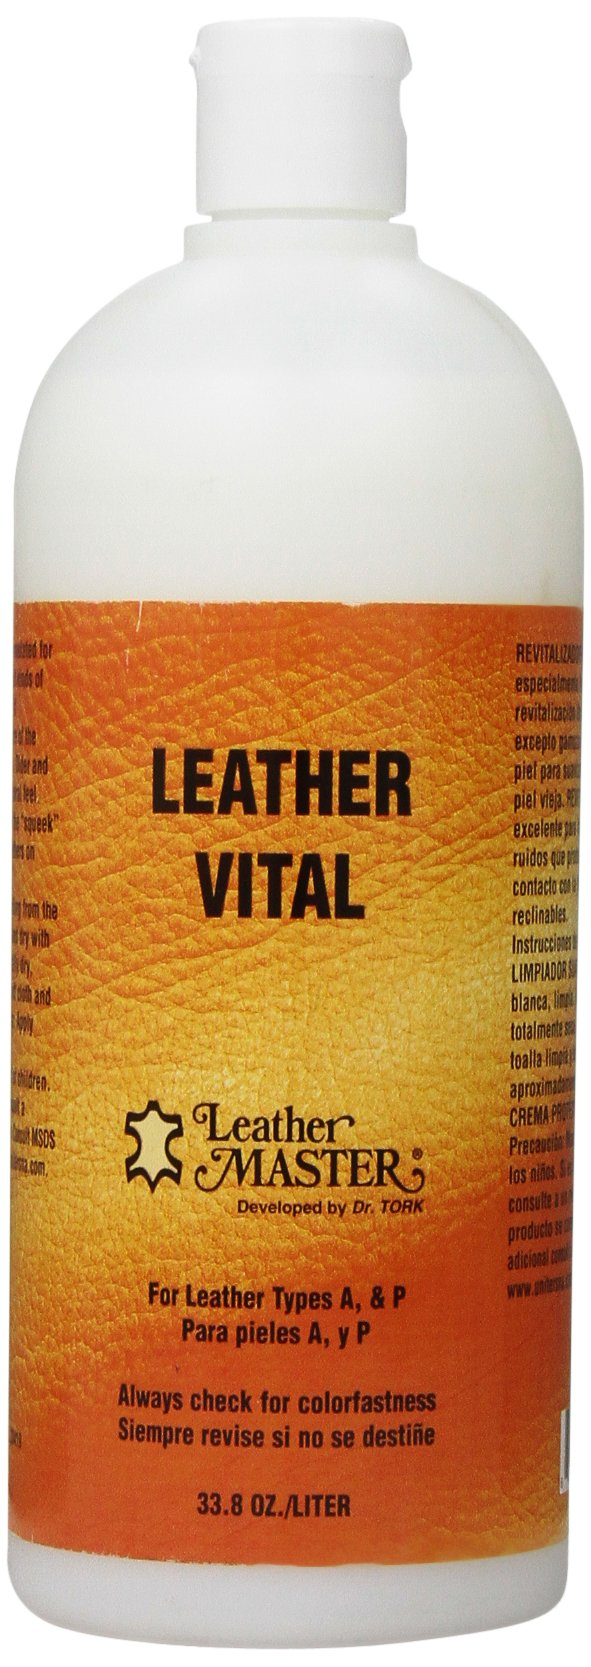 Leather Masters Leather Vital Softener and Revitalizer by Leather Masters (Image #1)